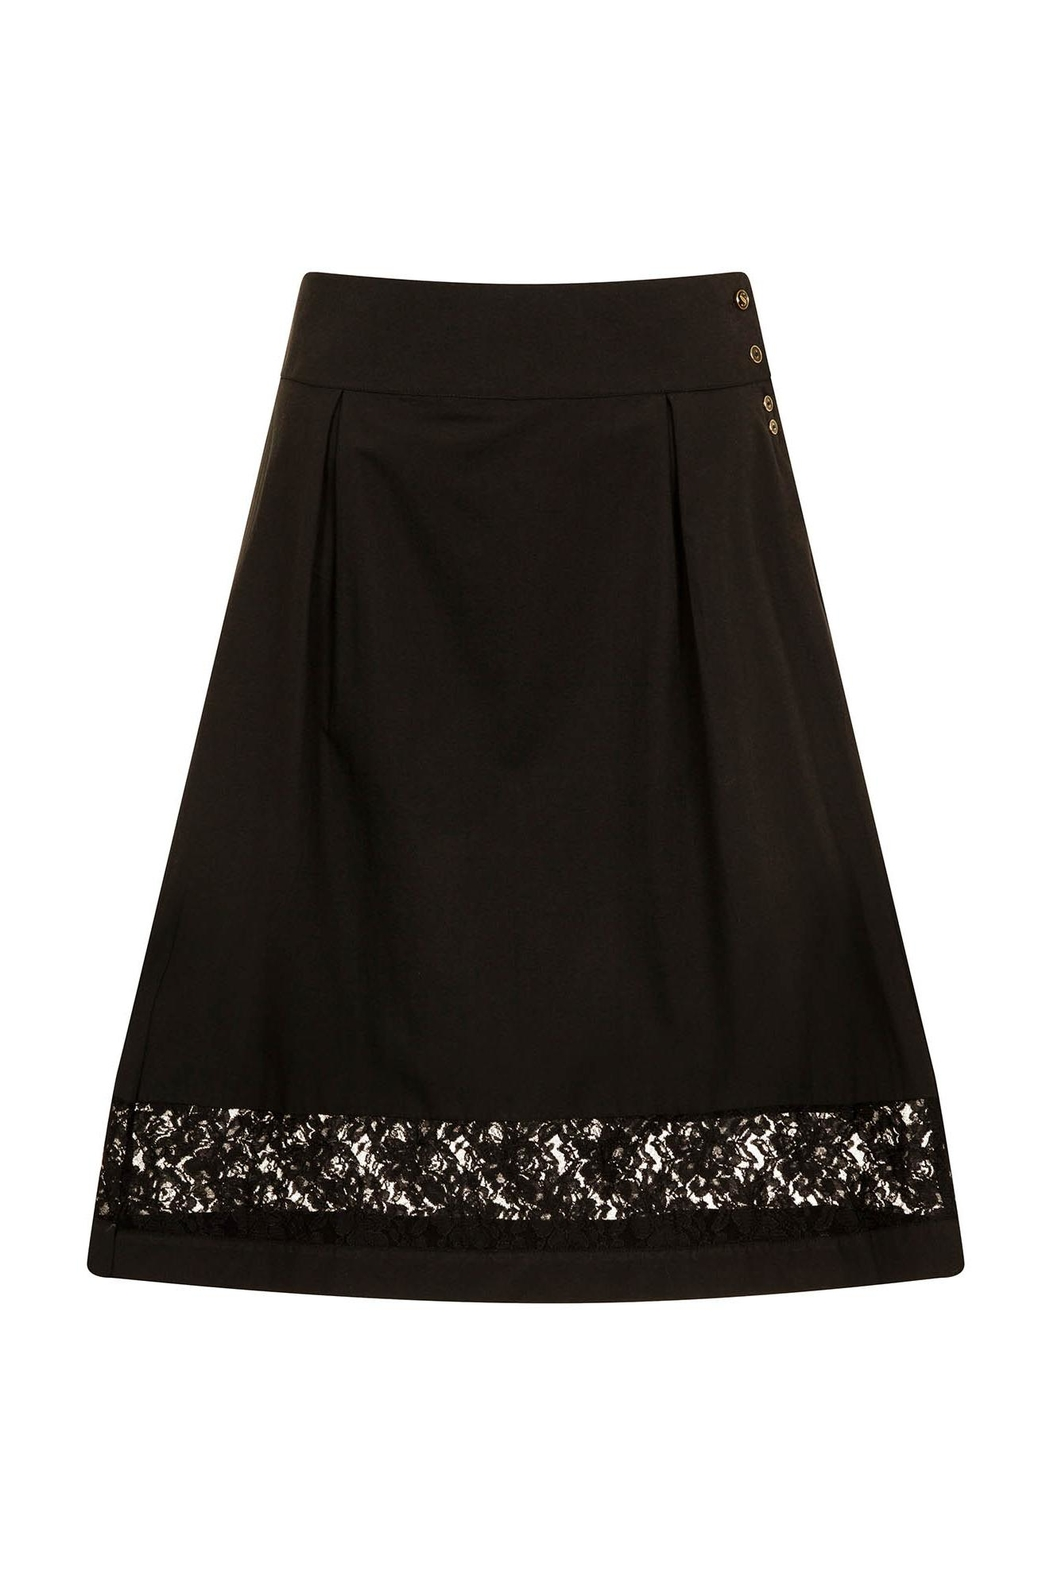 Sophie Cameron Davies Cotton A-Line Skirt - Front Full Image